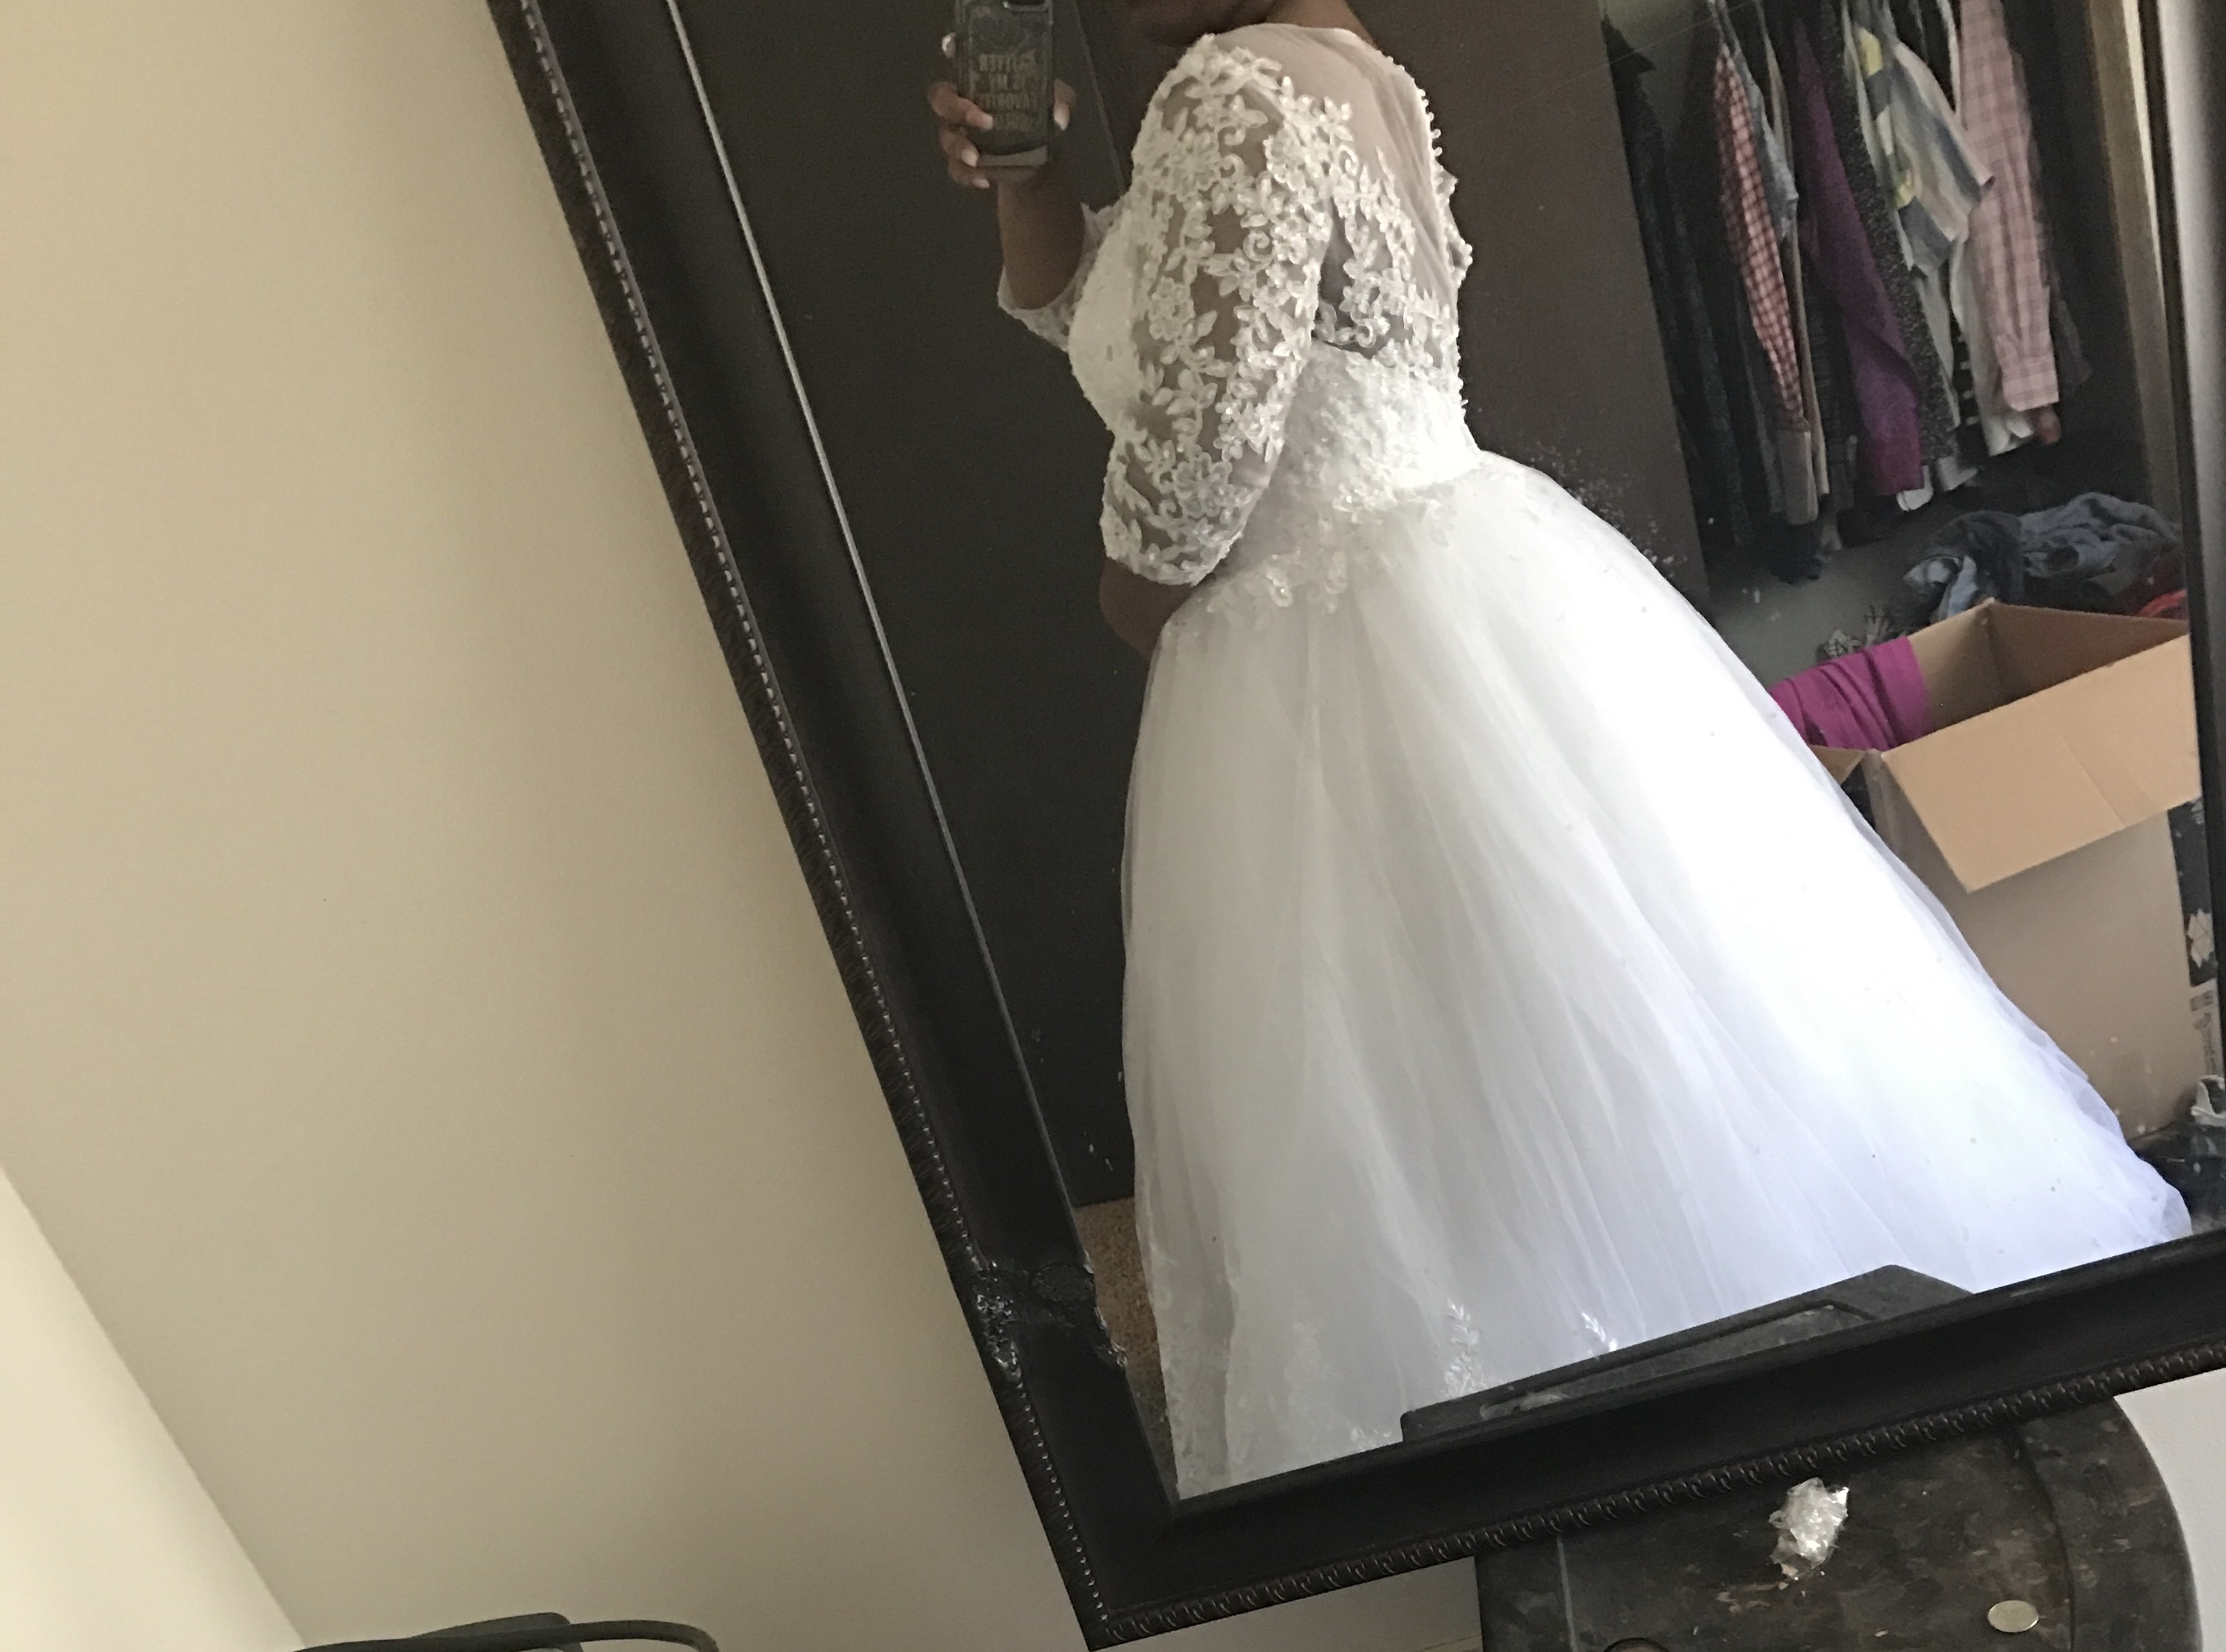 99 Dollar Wedding Gowns: Ball-Gown Scoop Neck Chapel Train Wedding Dress With